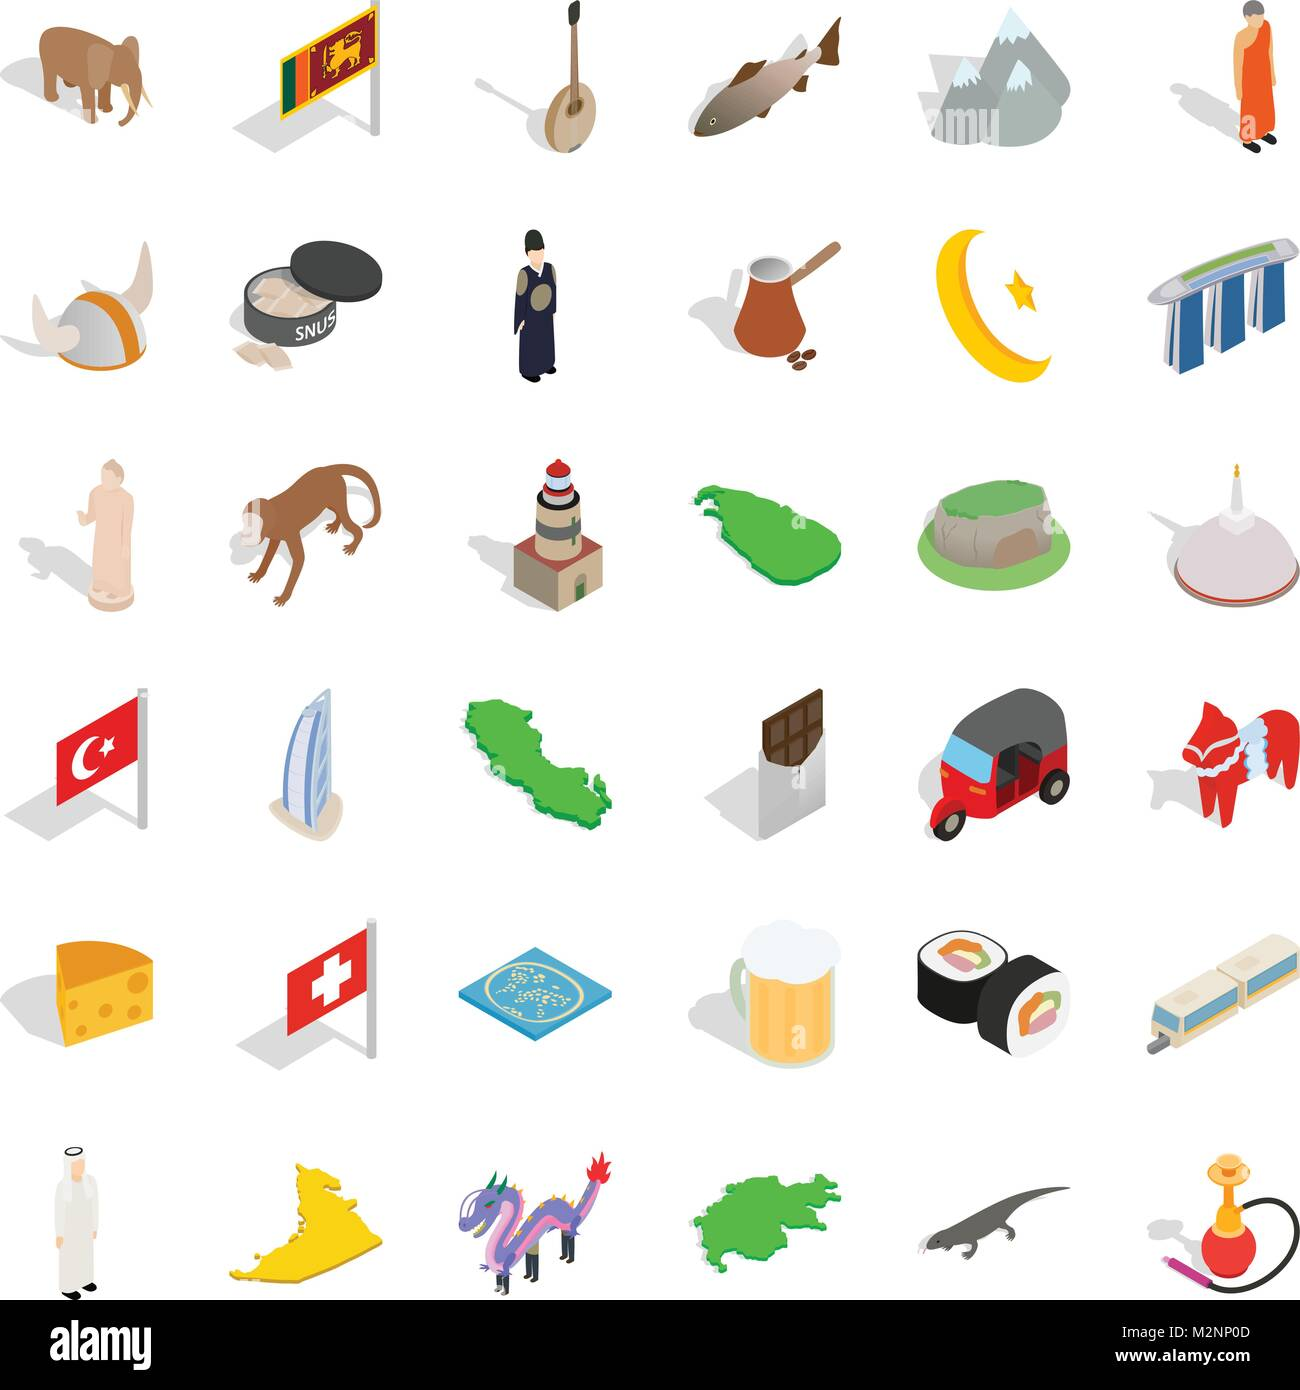 Younger icons set, isometric style - Stock Vector